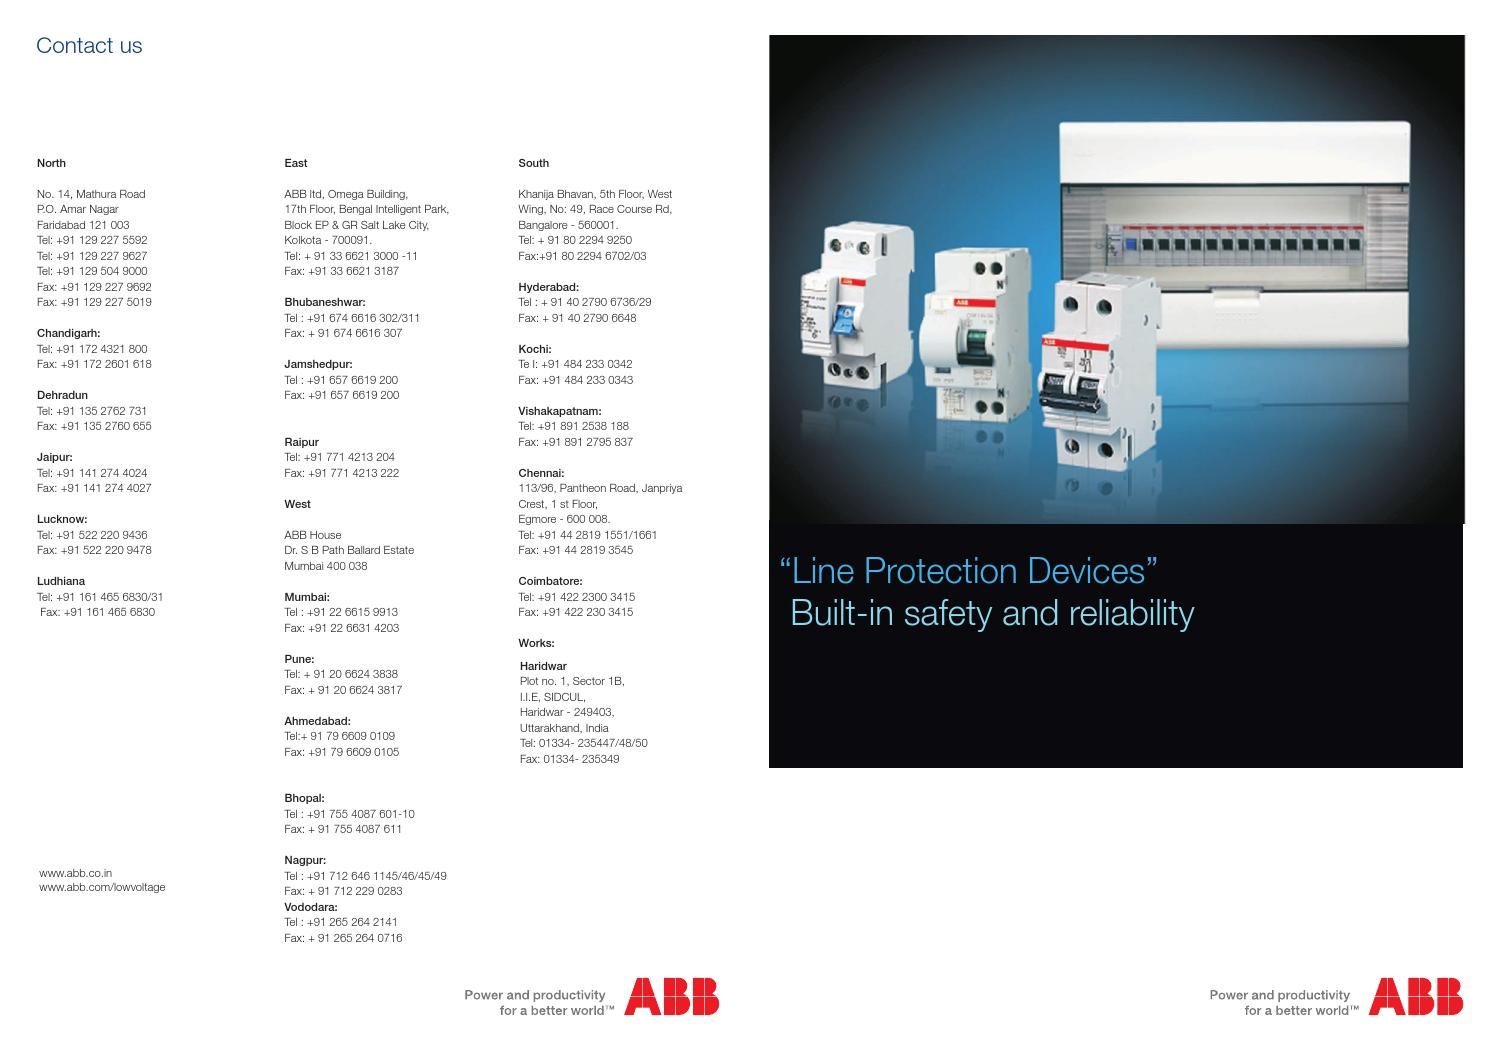 Abb Low Voltage Switchgears And Abb Contactor Powerfactorshop In - Abb basic relay school